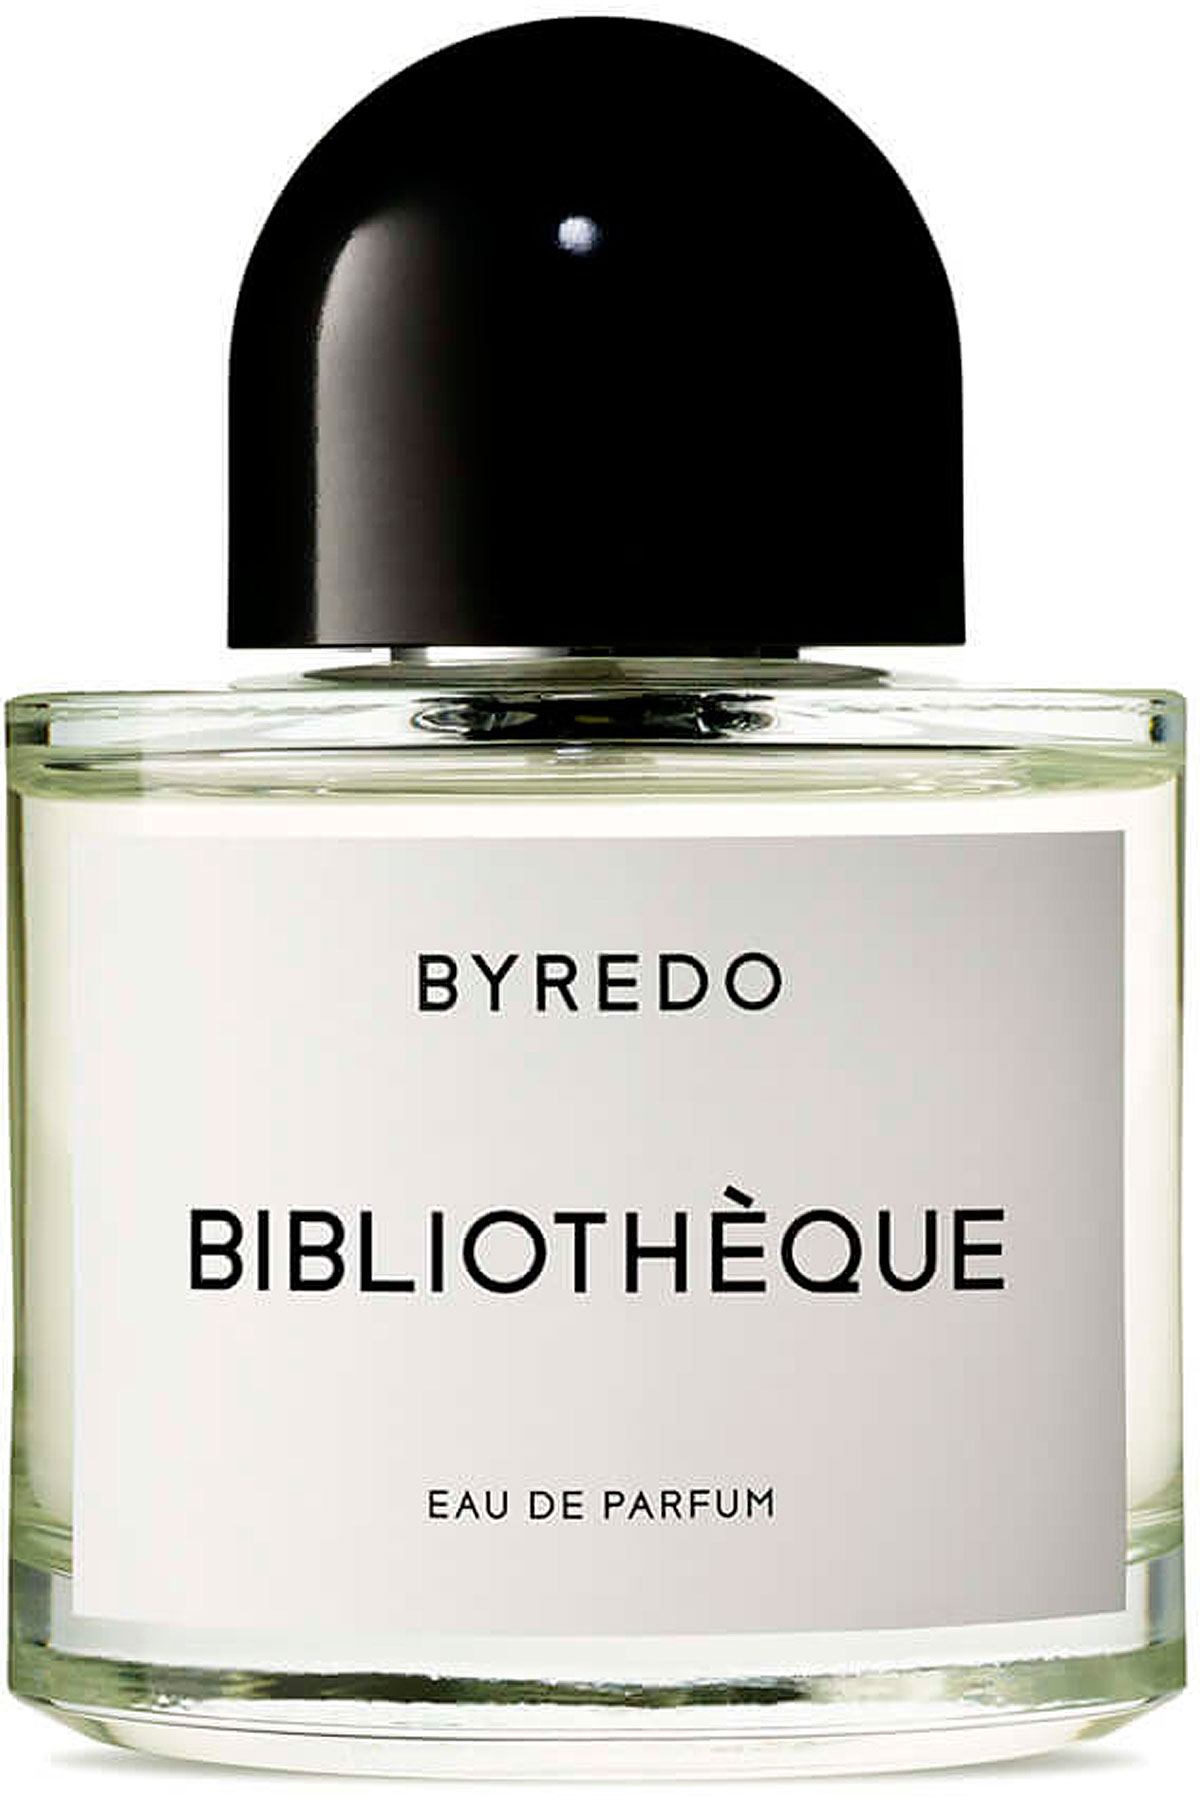 Byredo Fragrances for Women, Bibliotheque -eau De Parfum - 100 Ml, 2019, 100 ml